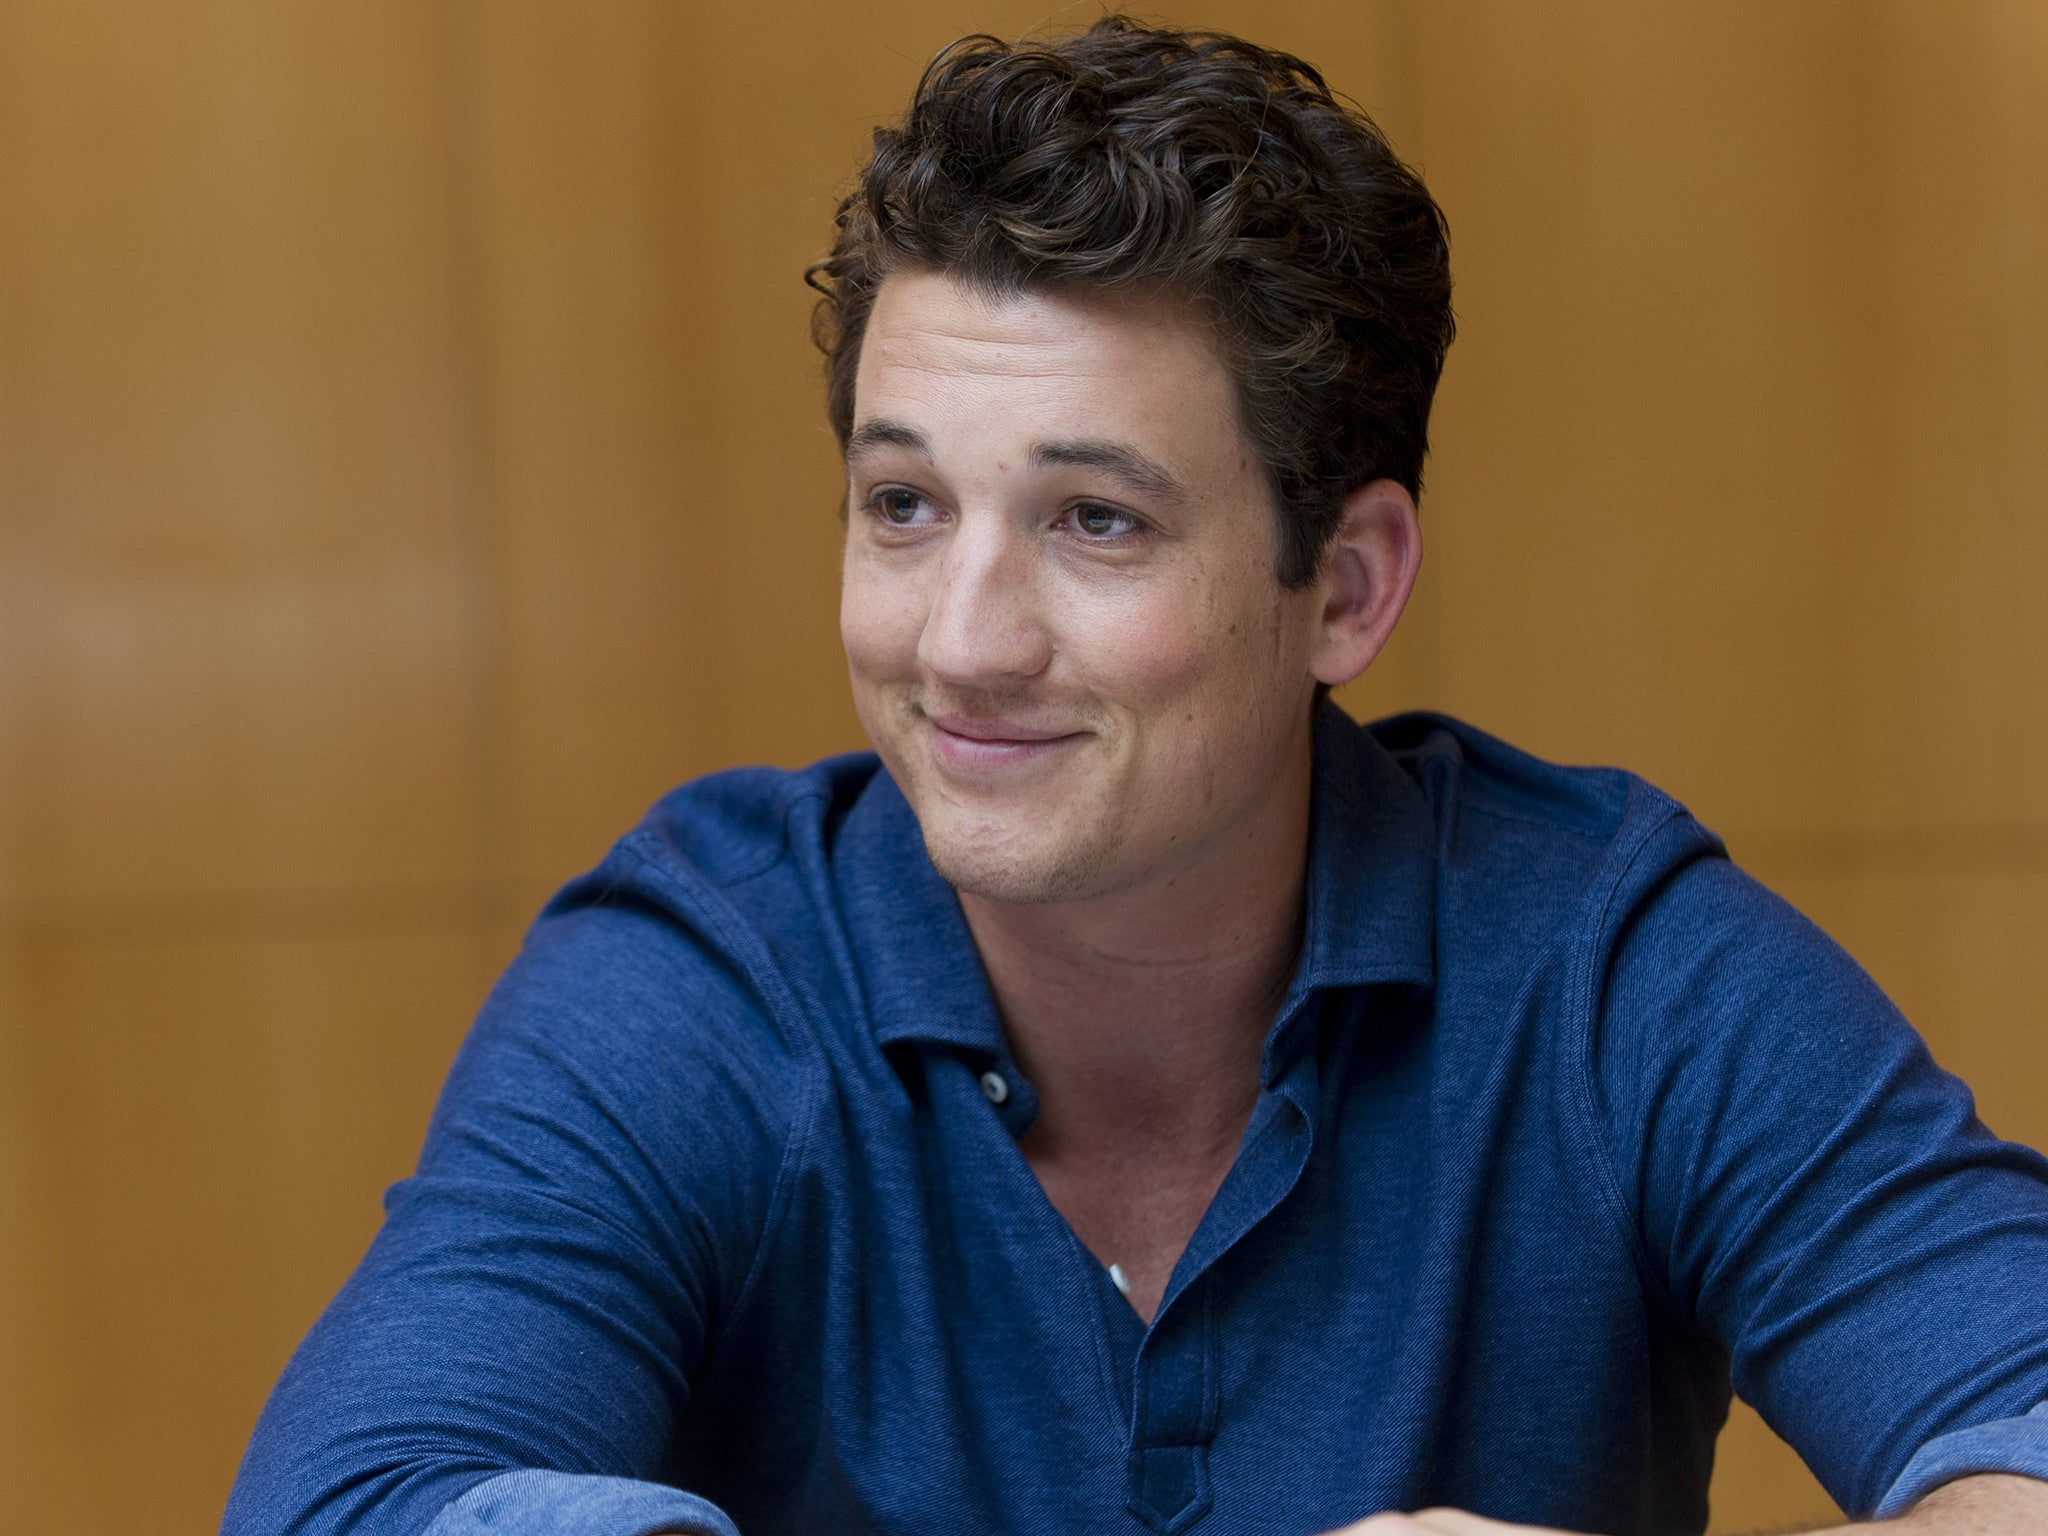 miles teller whiplash star on bagging his biggest role yet in miles teller whiplash star on bagging his biggest role yet in fantastic four and dealing online abuse the independent